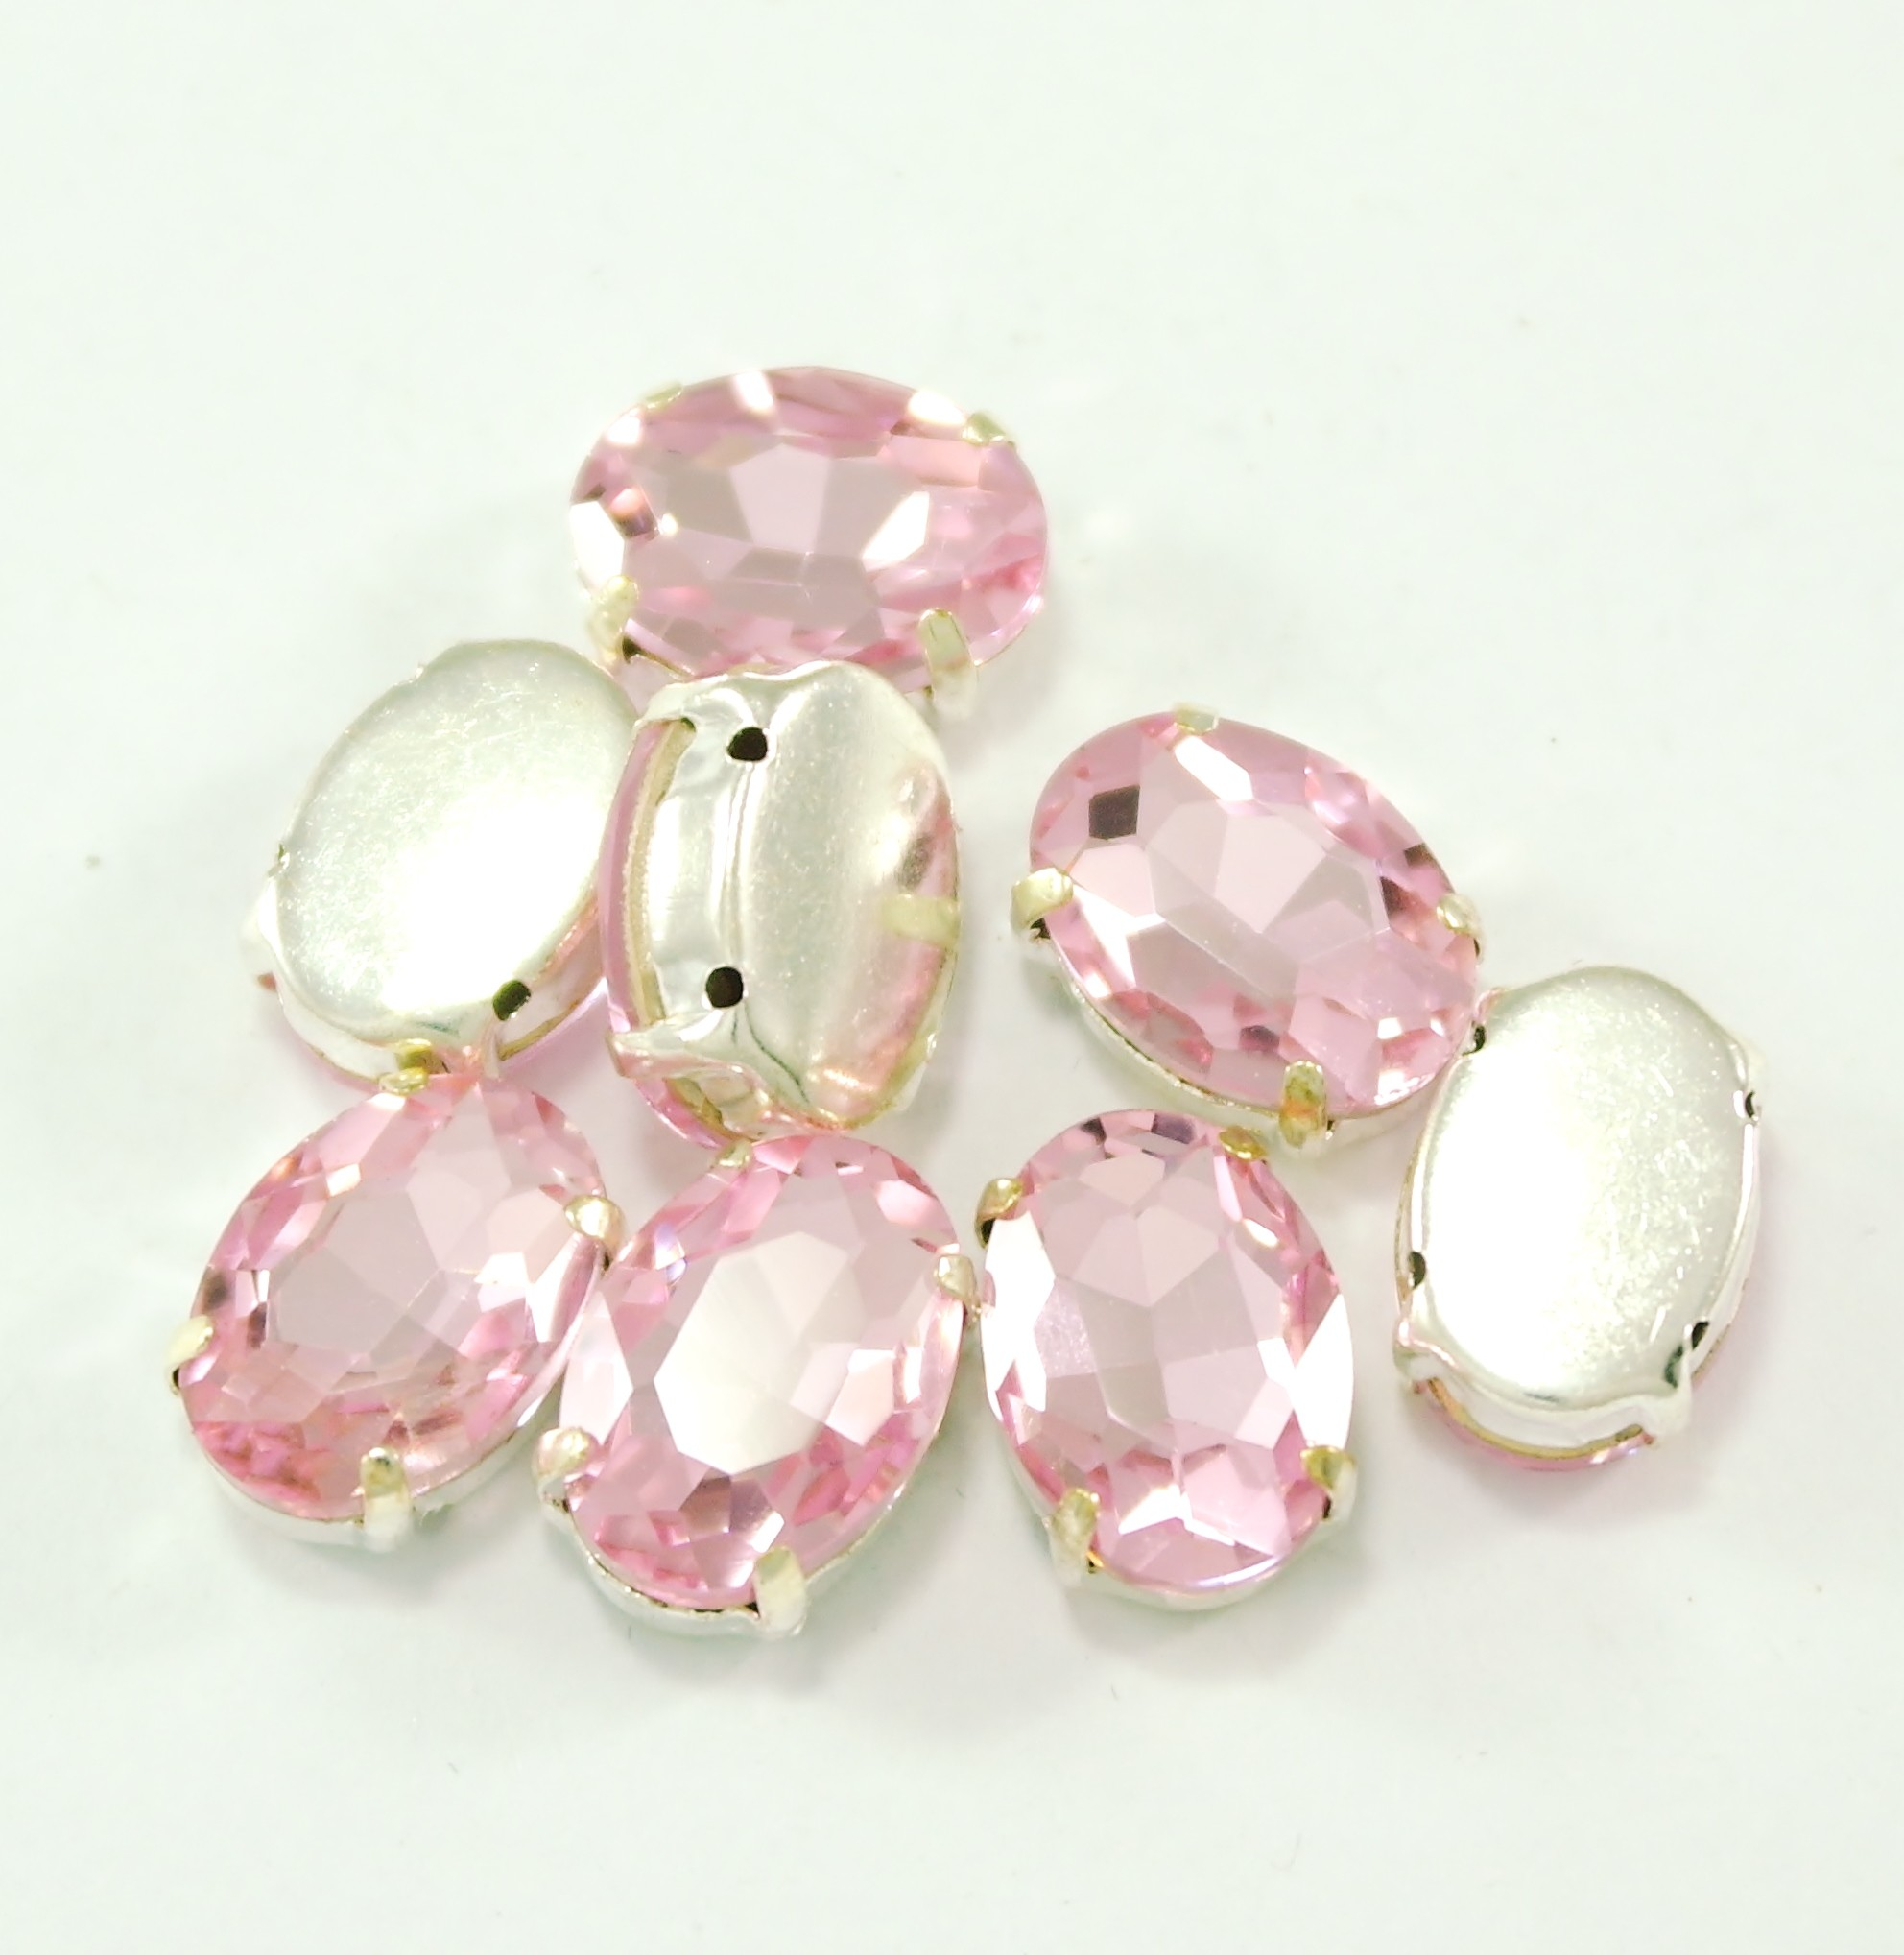 GLASS BEADS - LIGHT ROSE OVAL (O14)